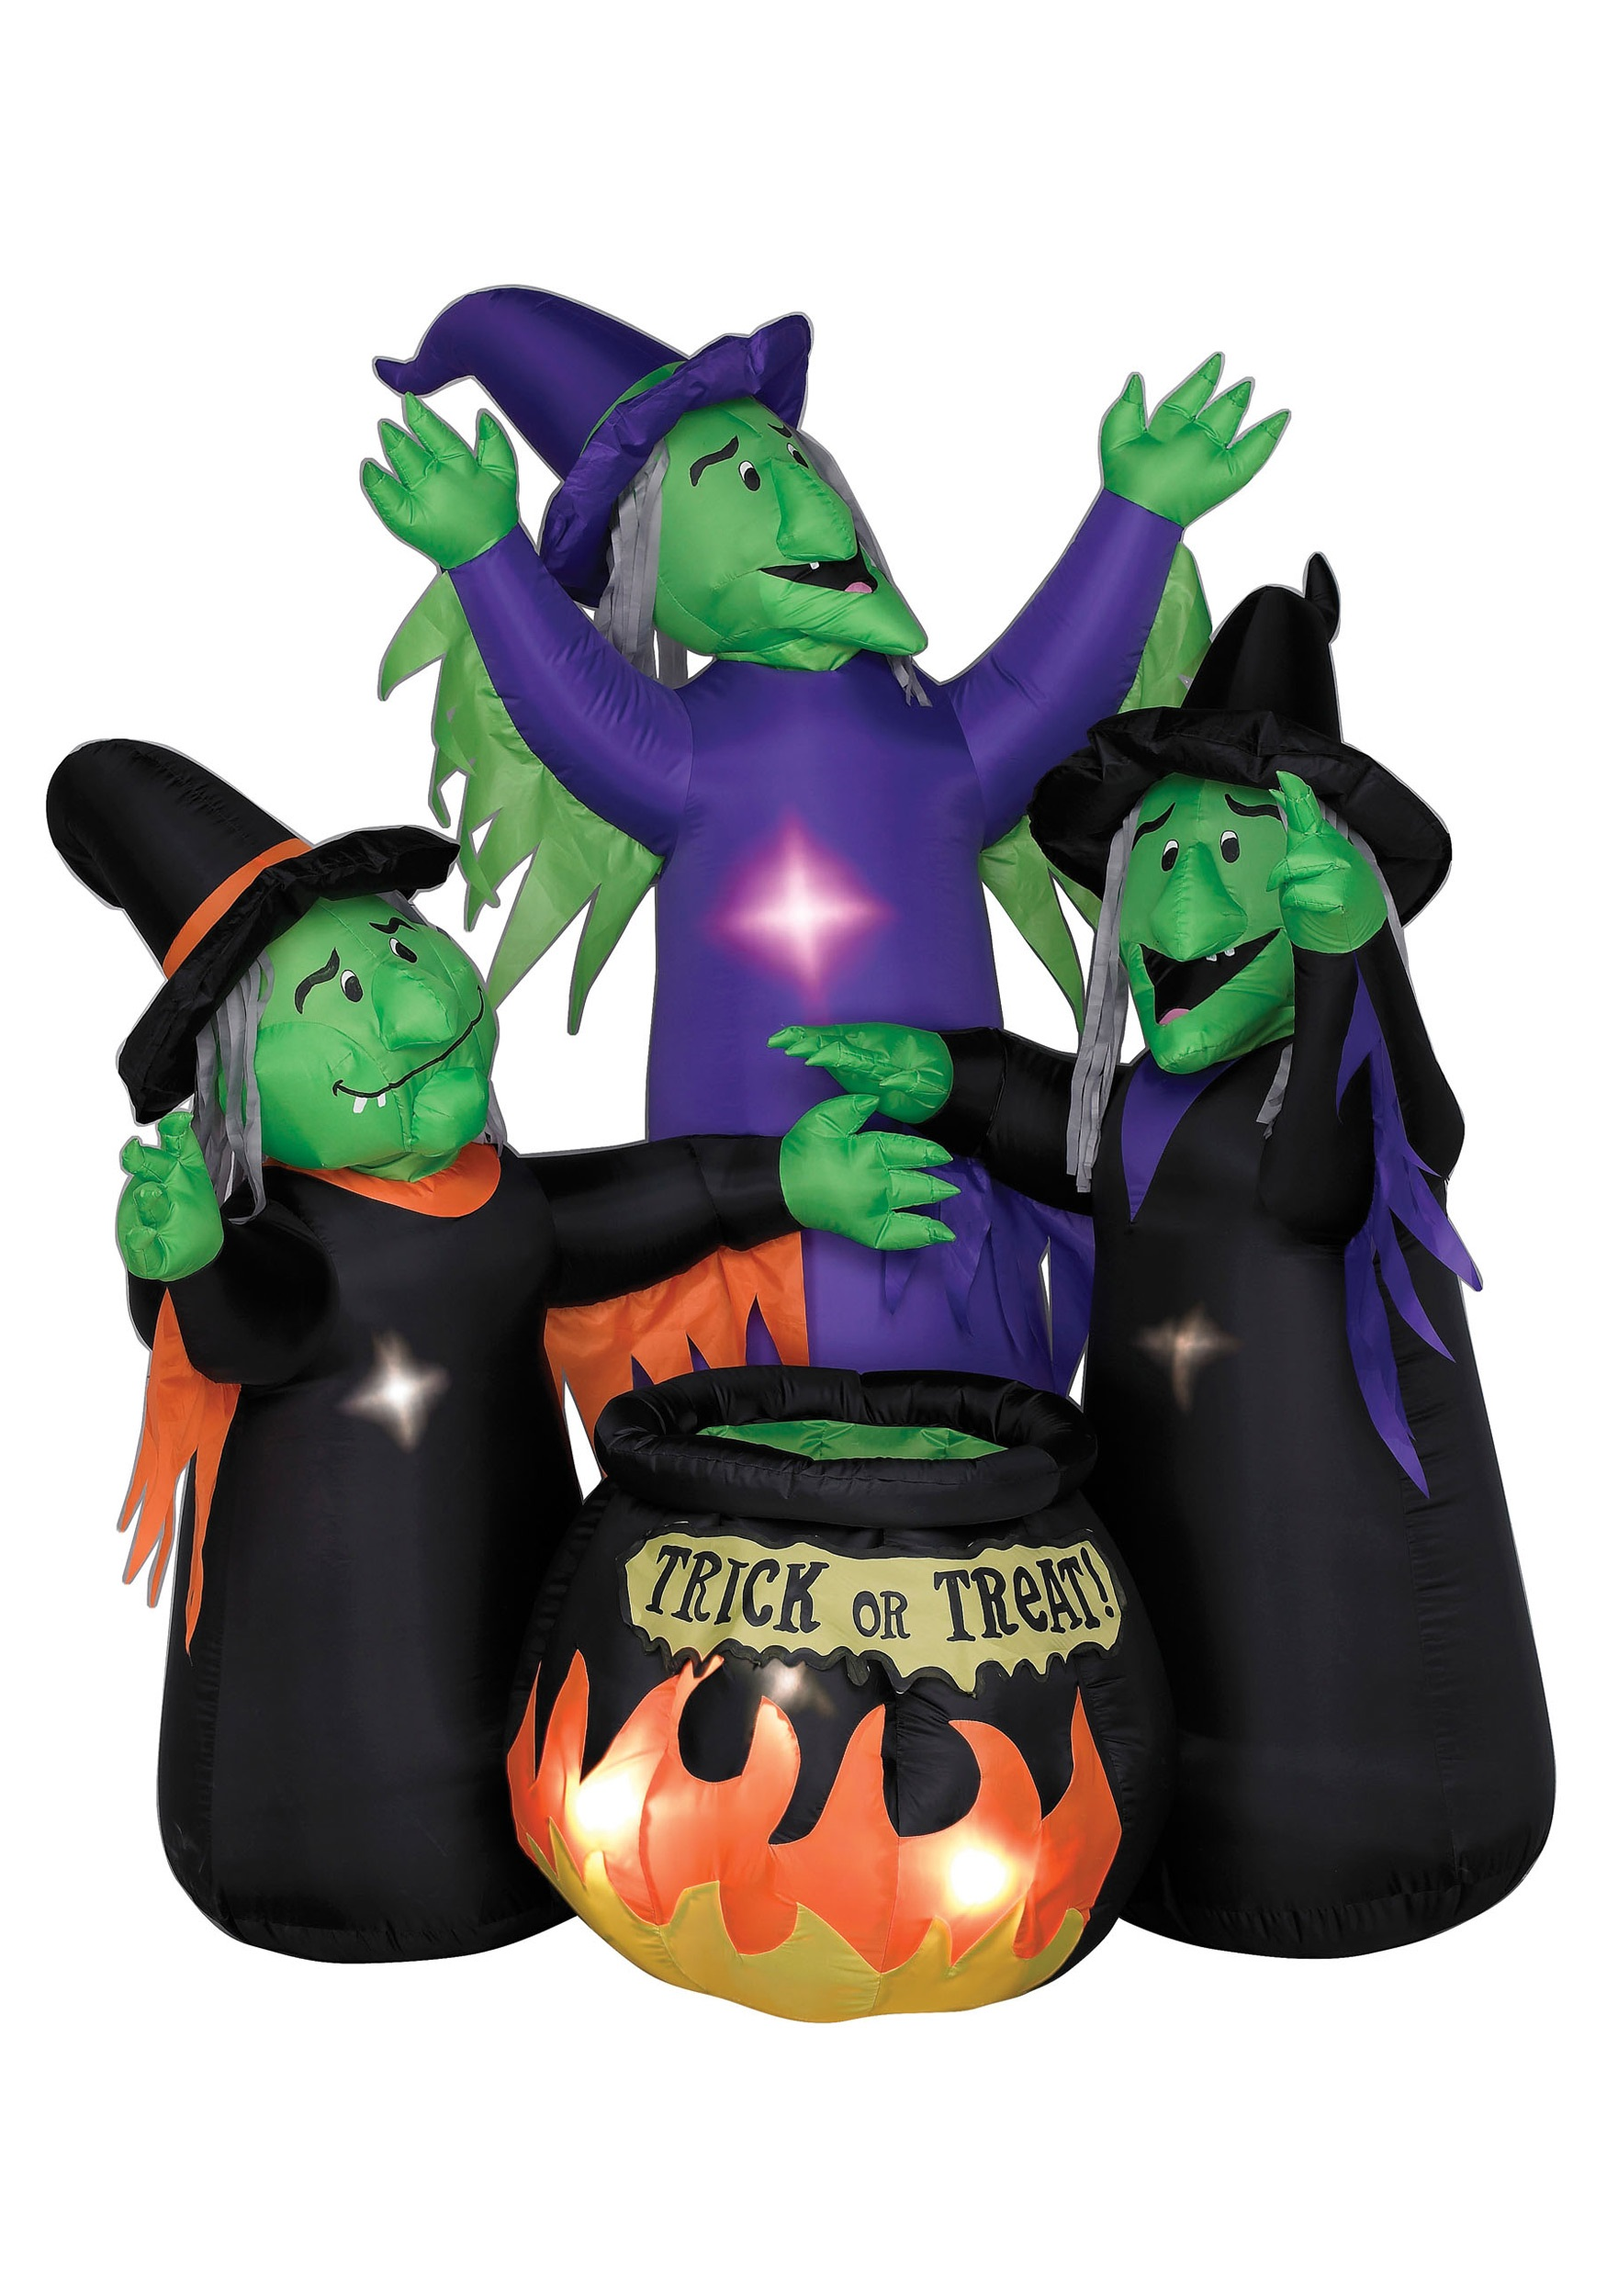 Animated Airblown Three Witches And Cauldron Halloween